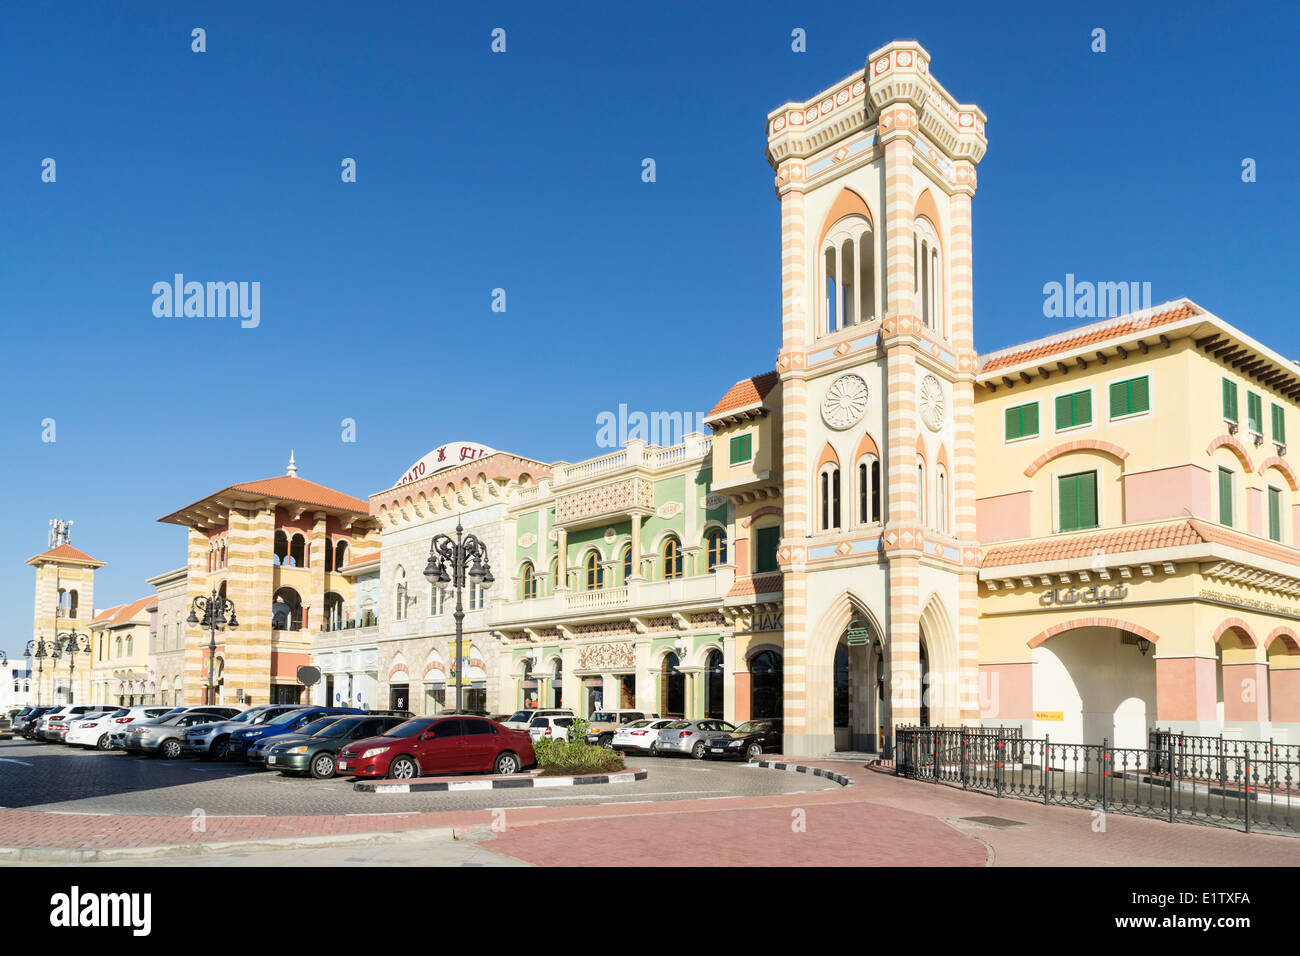 Exterior of Italianate Mercato Shoppin Mall in Dubai United Arab Emirates Stock Photo